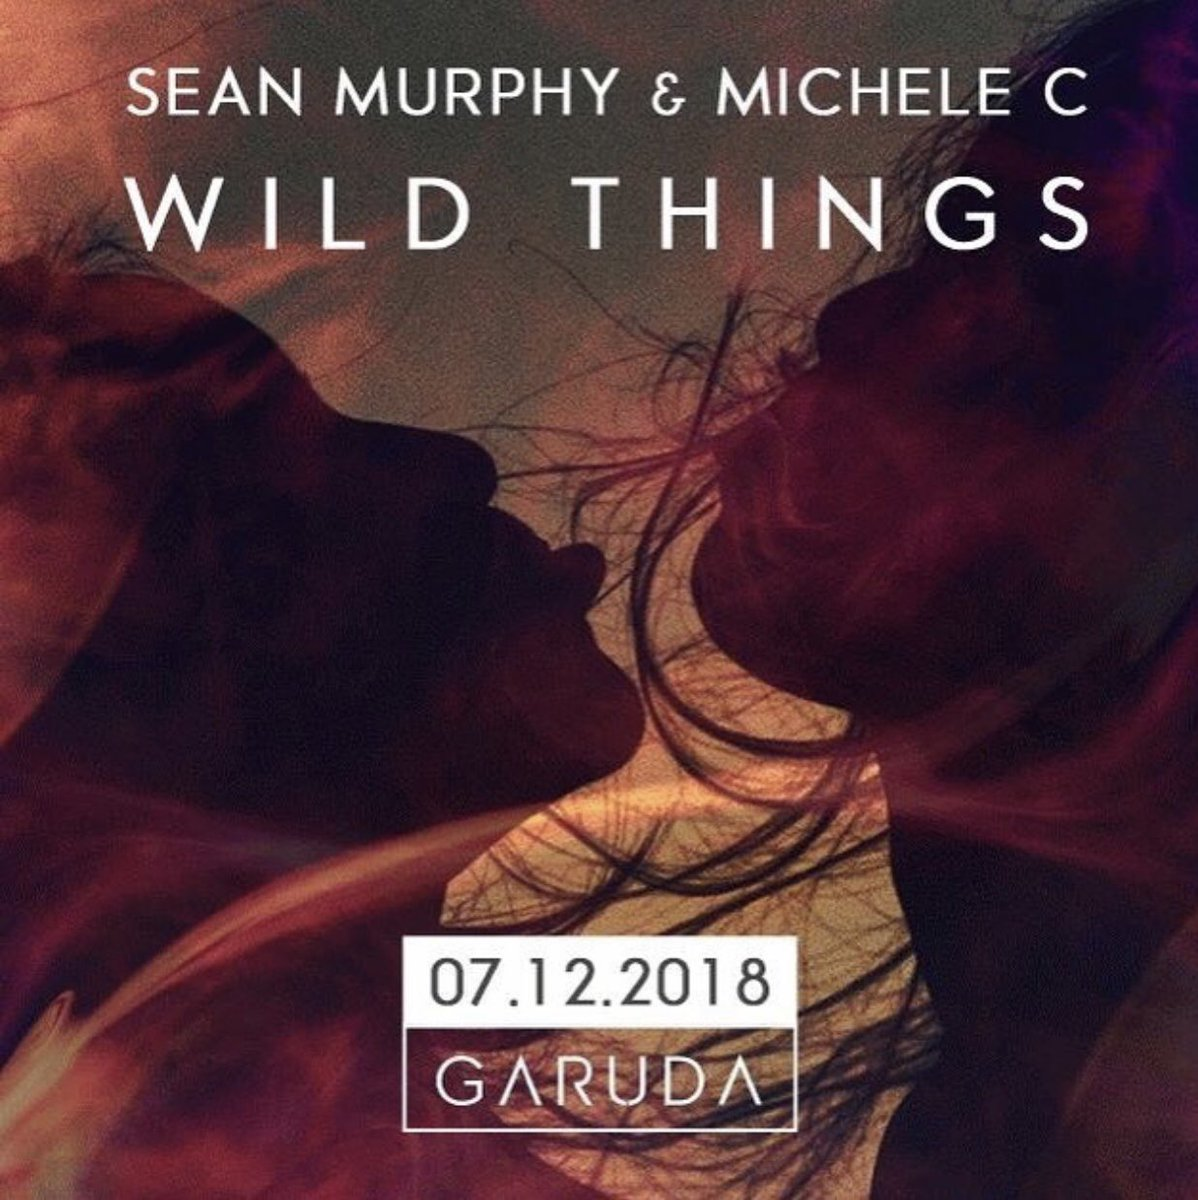 Wild Things is out tomorrow! Thank you to @SeanMurphyNI for the perfect collaboration and to @Garuda_Music for giving it a home 💛 Grateful and proud of this baby! #asot #trance https://t.co/UYxDDeWkxW